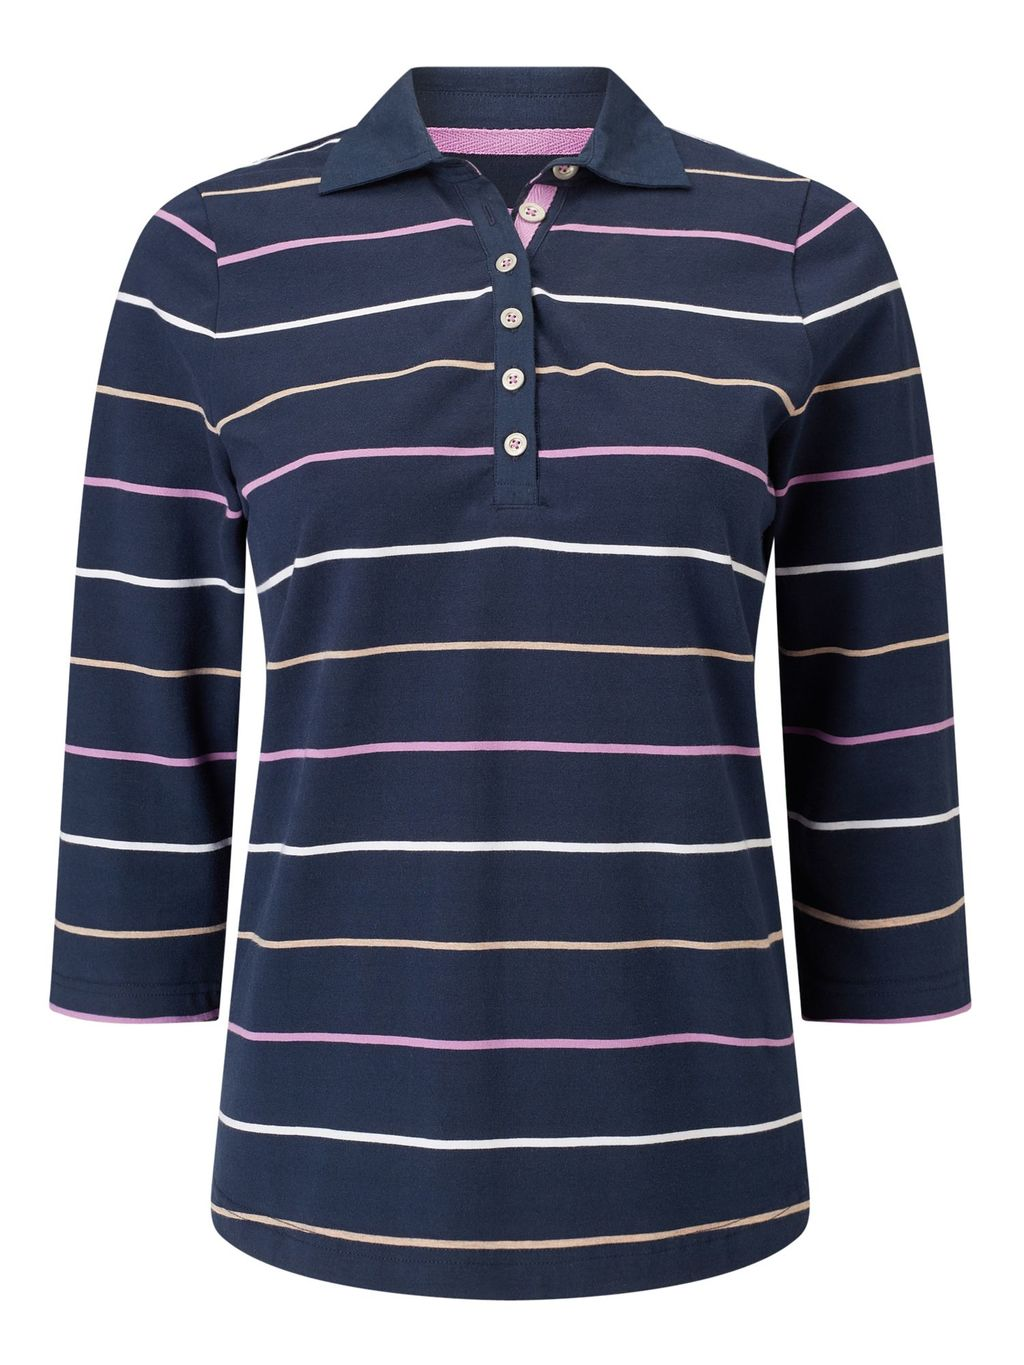 Navy Fine Stripe Rugby, Navy - neckline: shirt collar/peter pan/zip with opening; pattern: horizontal stripes; hip detail: draws attention to hips; style: polo shirt; predominant colour: navy; occasions: casual; length: standard; fibres: cotton - stretch; fit: body skimming; sleeve length: 3/4 length; sleeve style: standard; pattern type: fabric; pattern size: standard; texture group: jersey - stretchy/drapey; multicoloured: multicoloured; season: s/s 2016; wardrobe: basic; embellishment location: bust